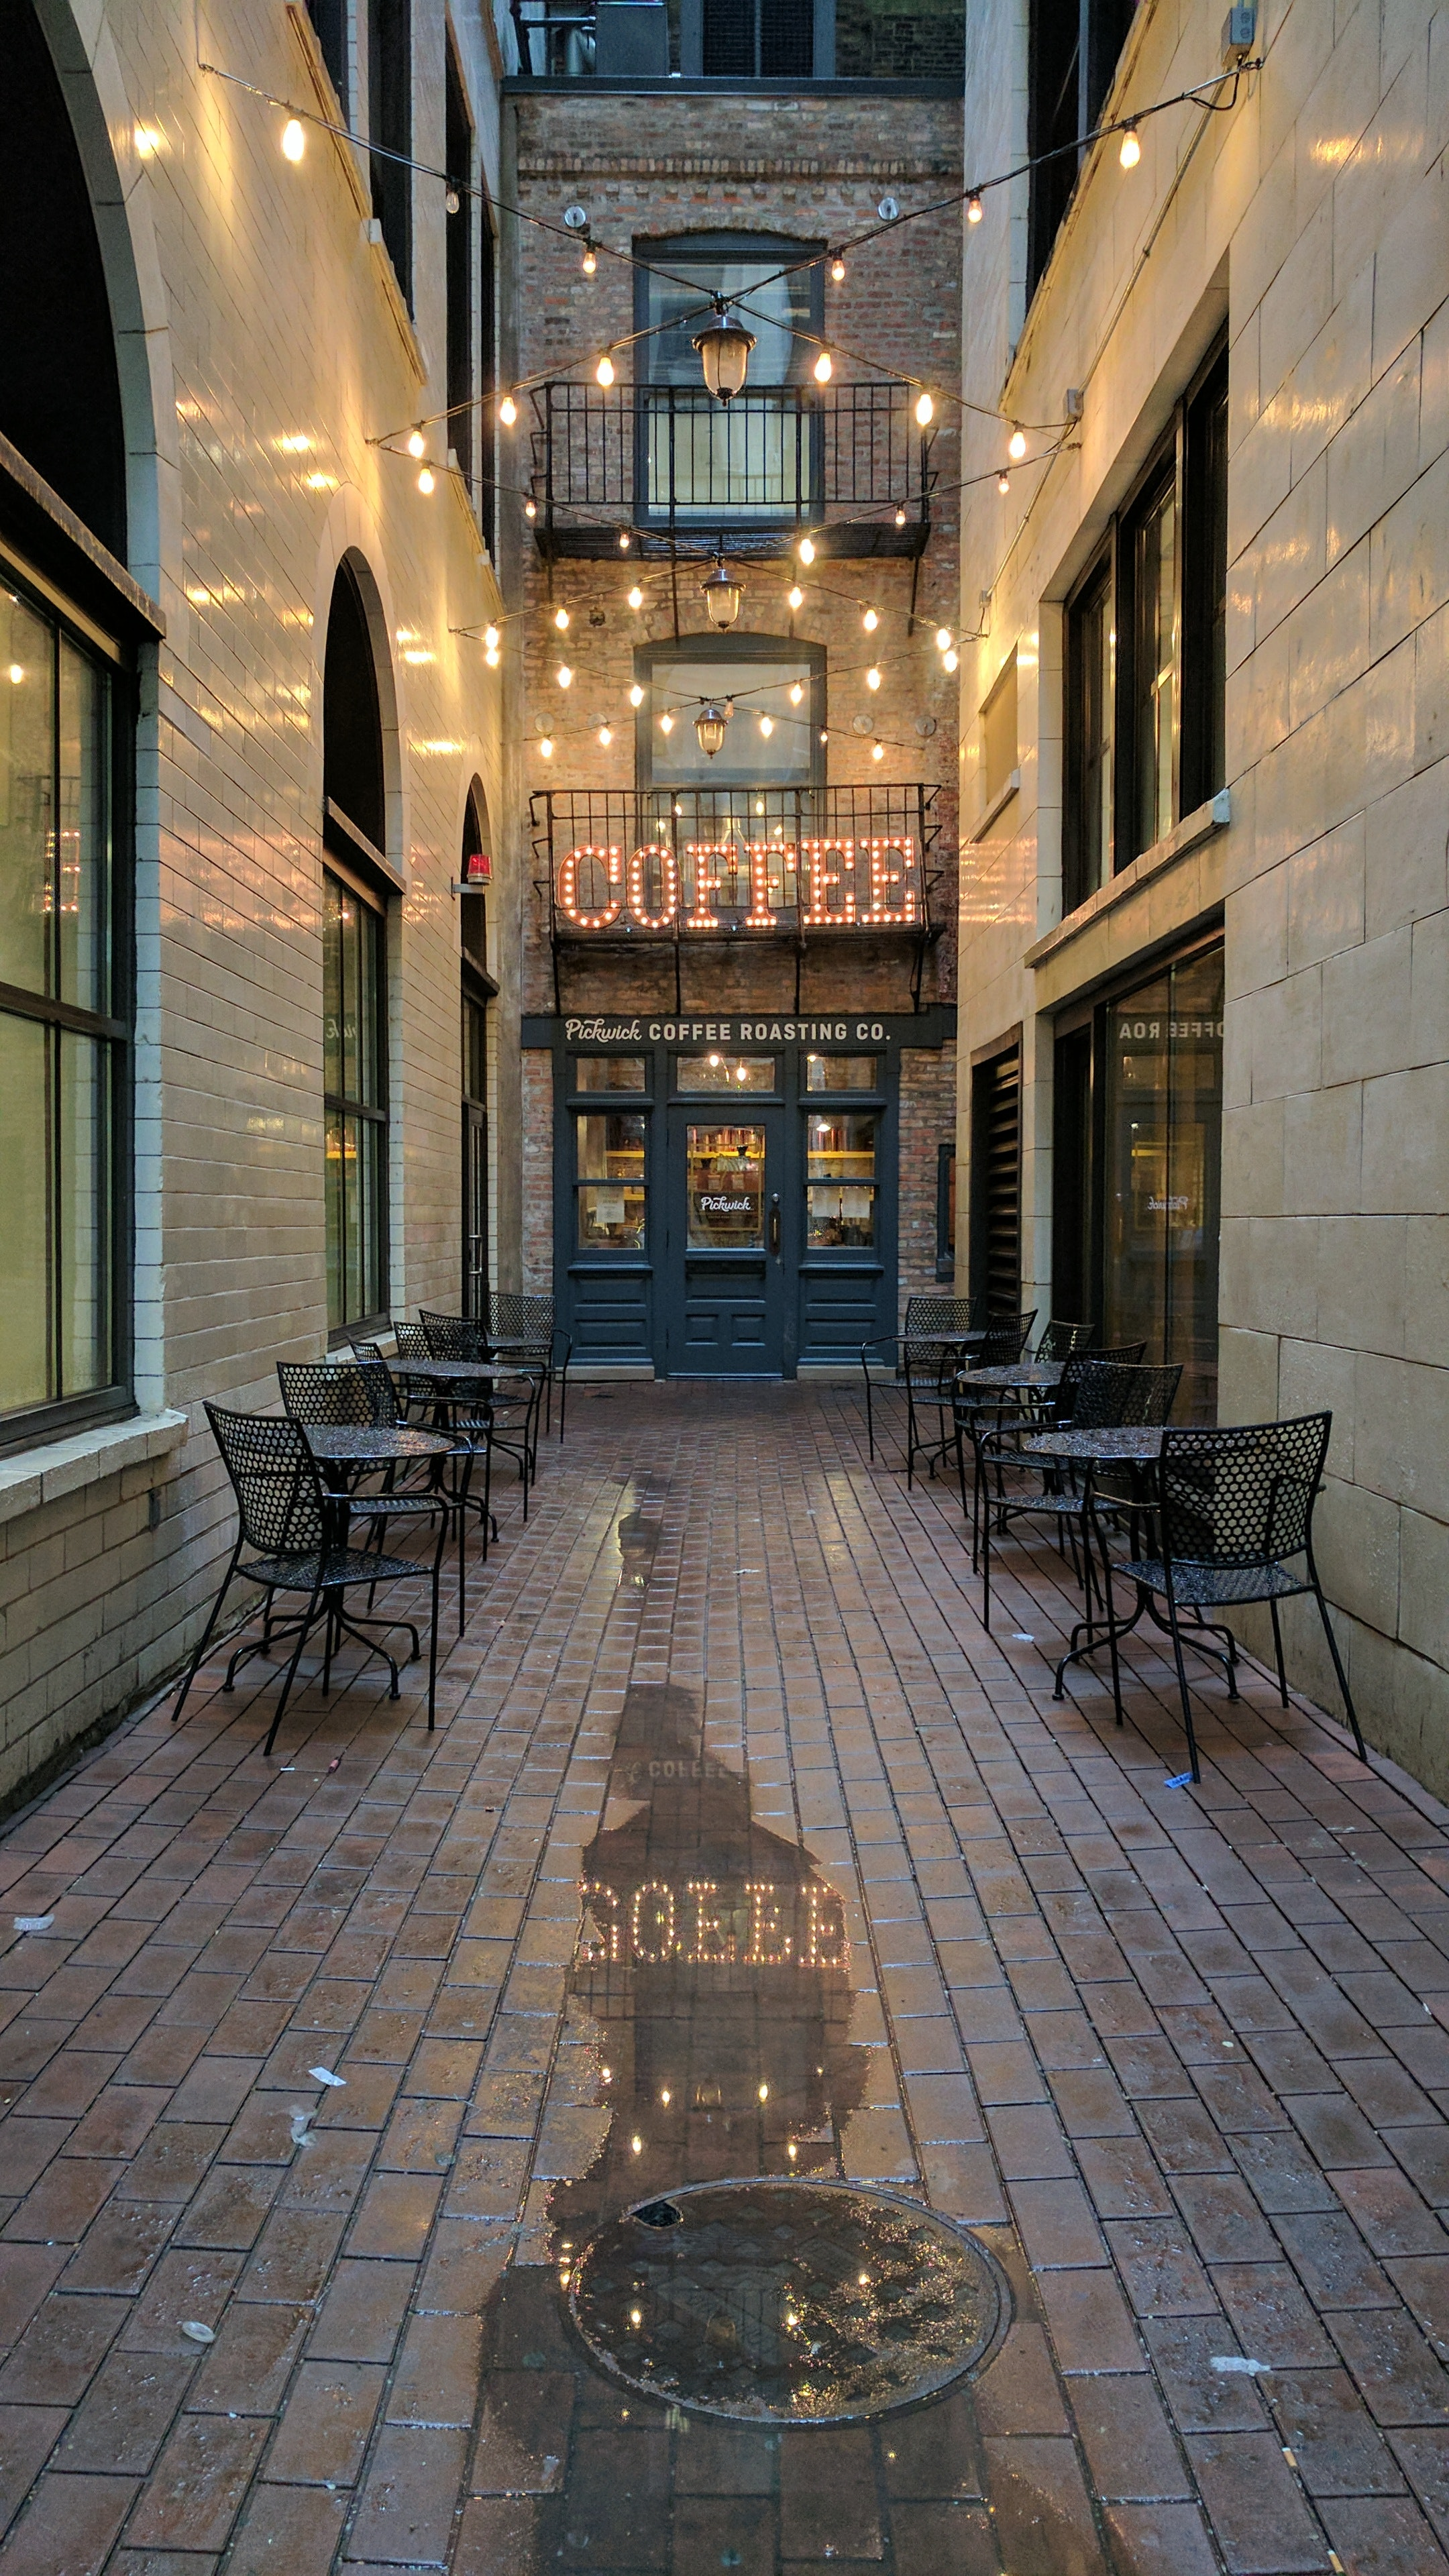 Exterior of blue cafe in alleyway with chairs